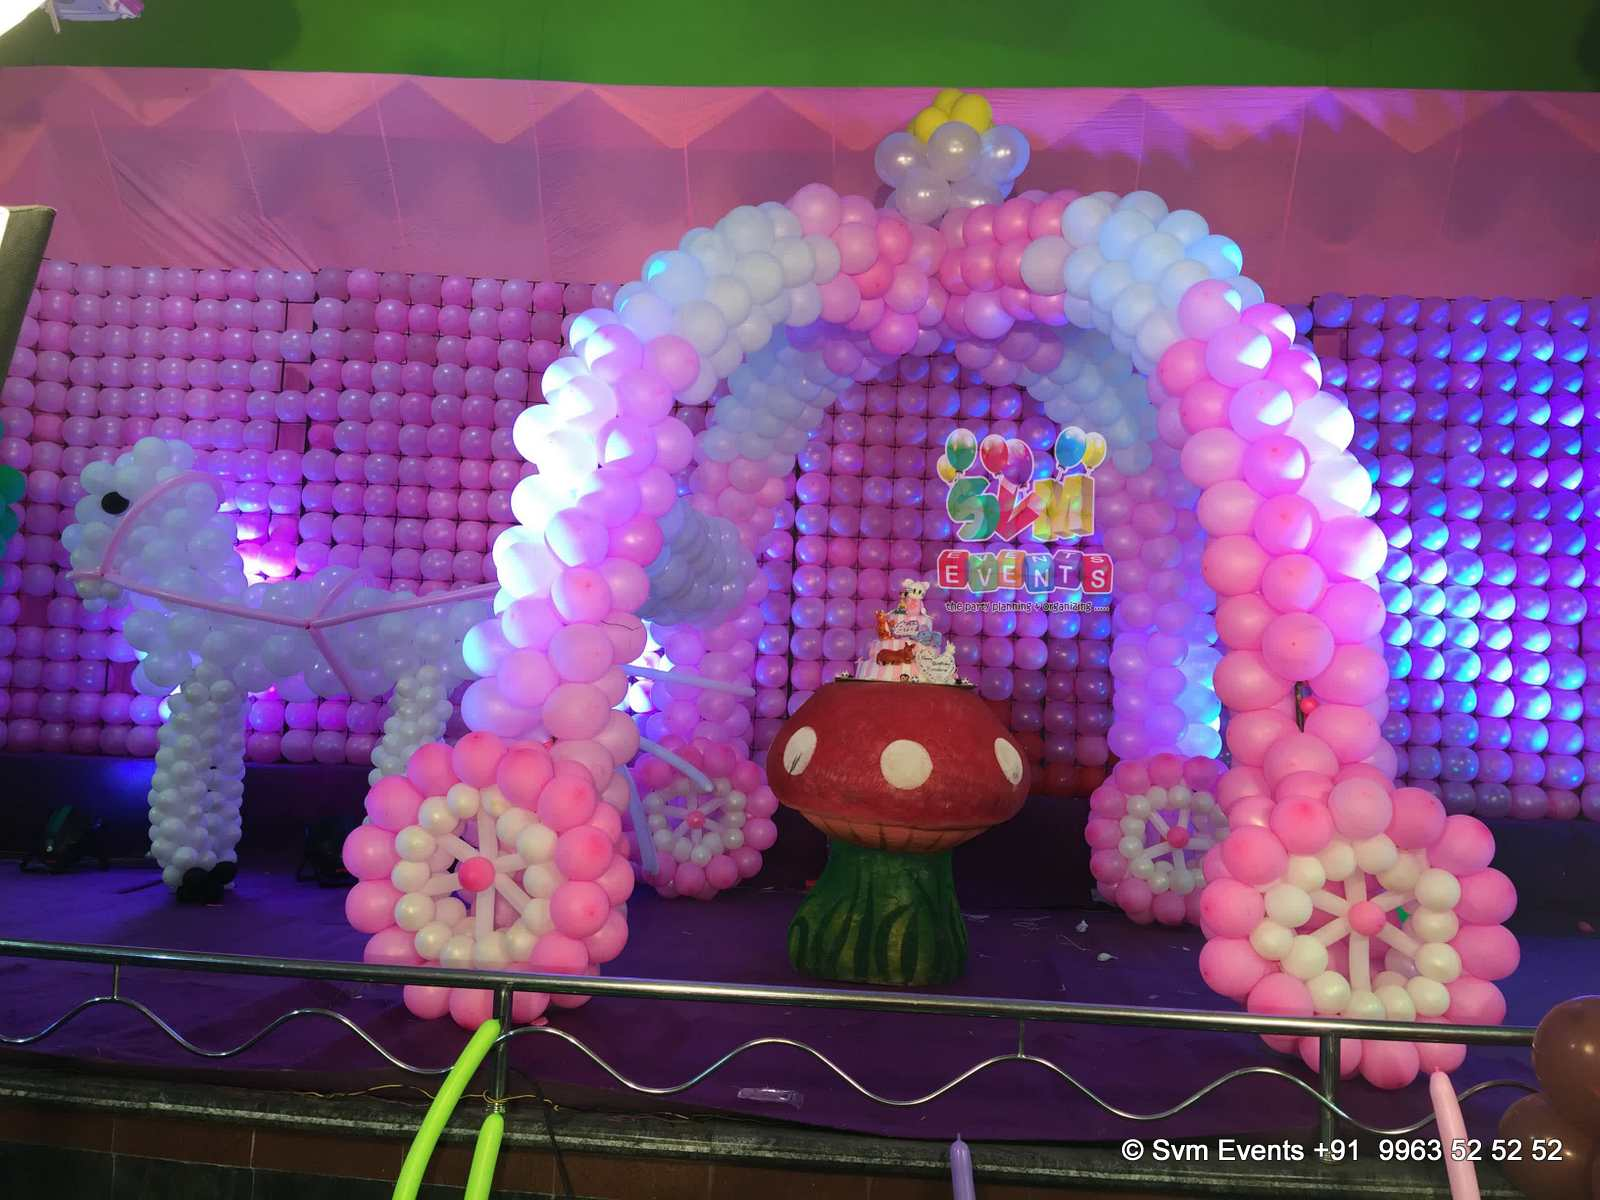 Svm events chariot theme for kids 1st birthday party and for 1st birthday decoration ideas